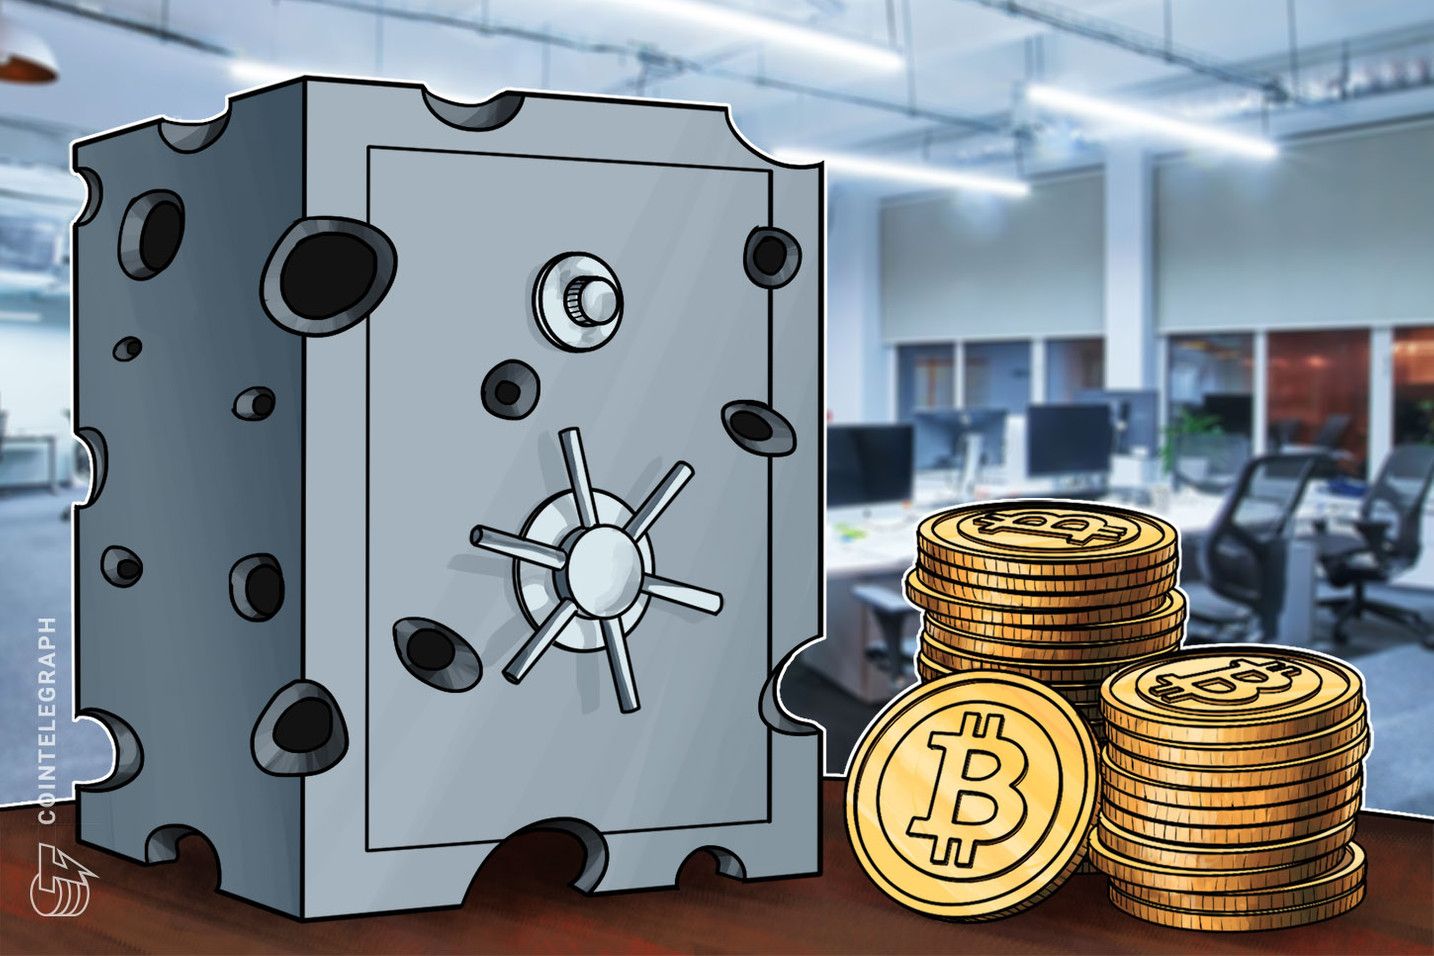 Security Report Paints Mixed Picture of Protection at Biggest Crypto Exchanges